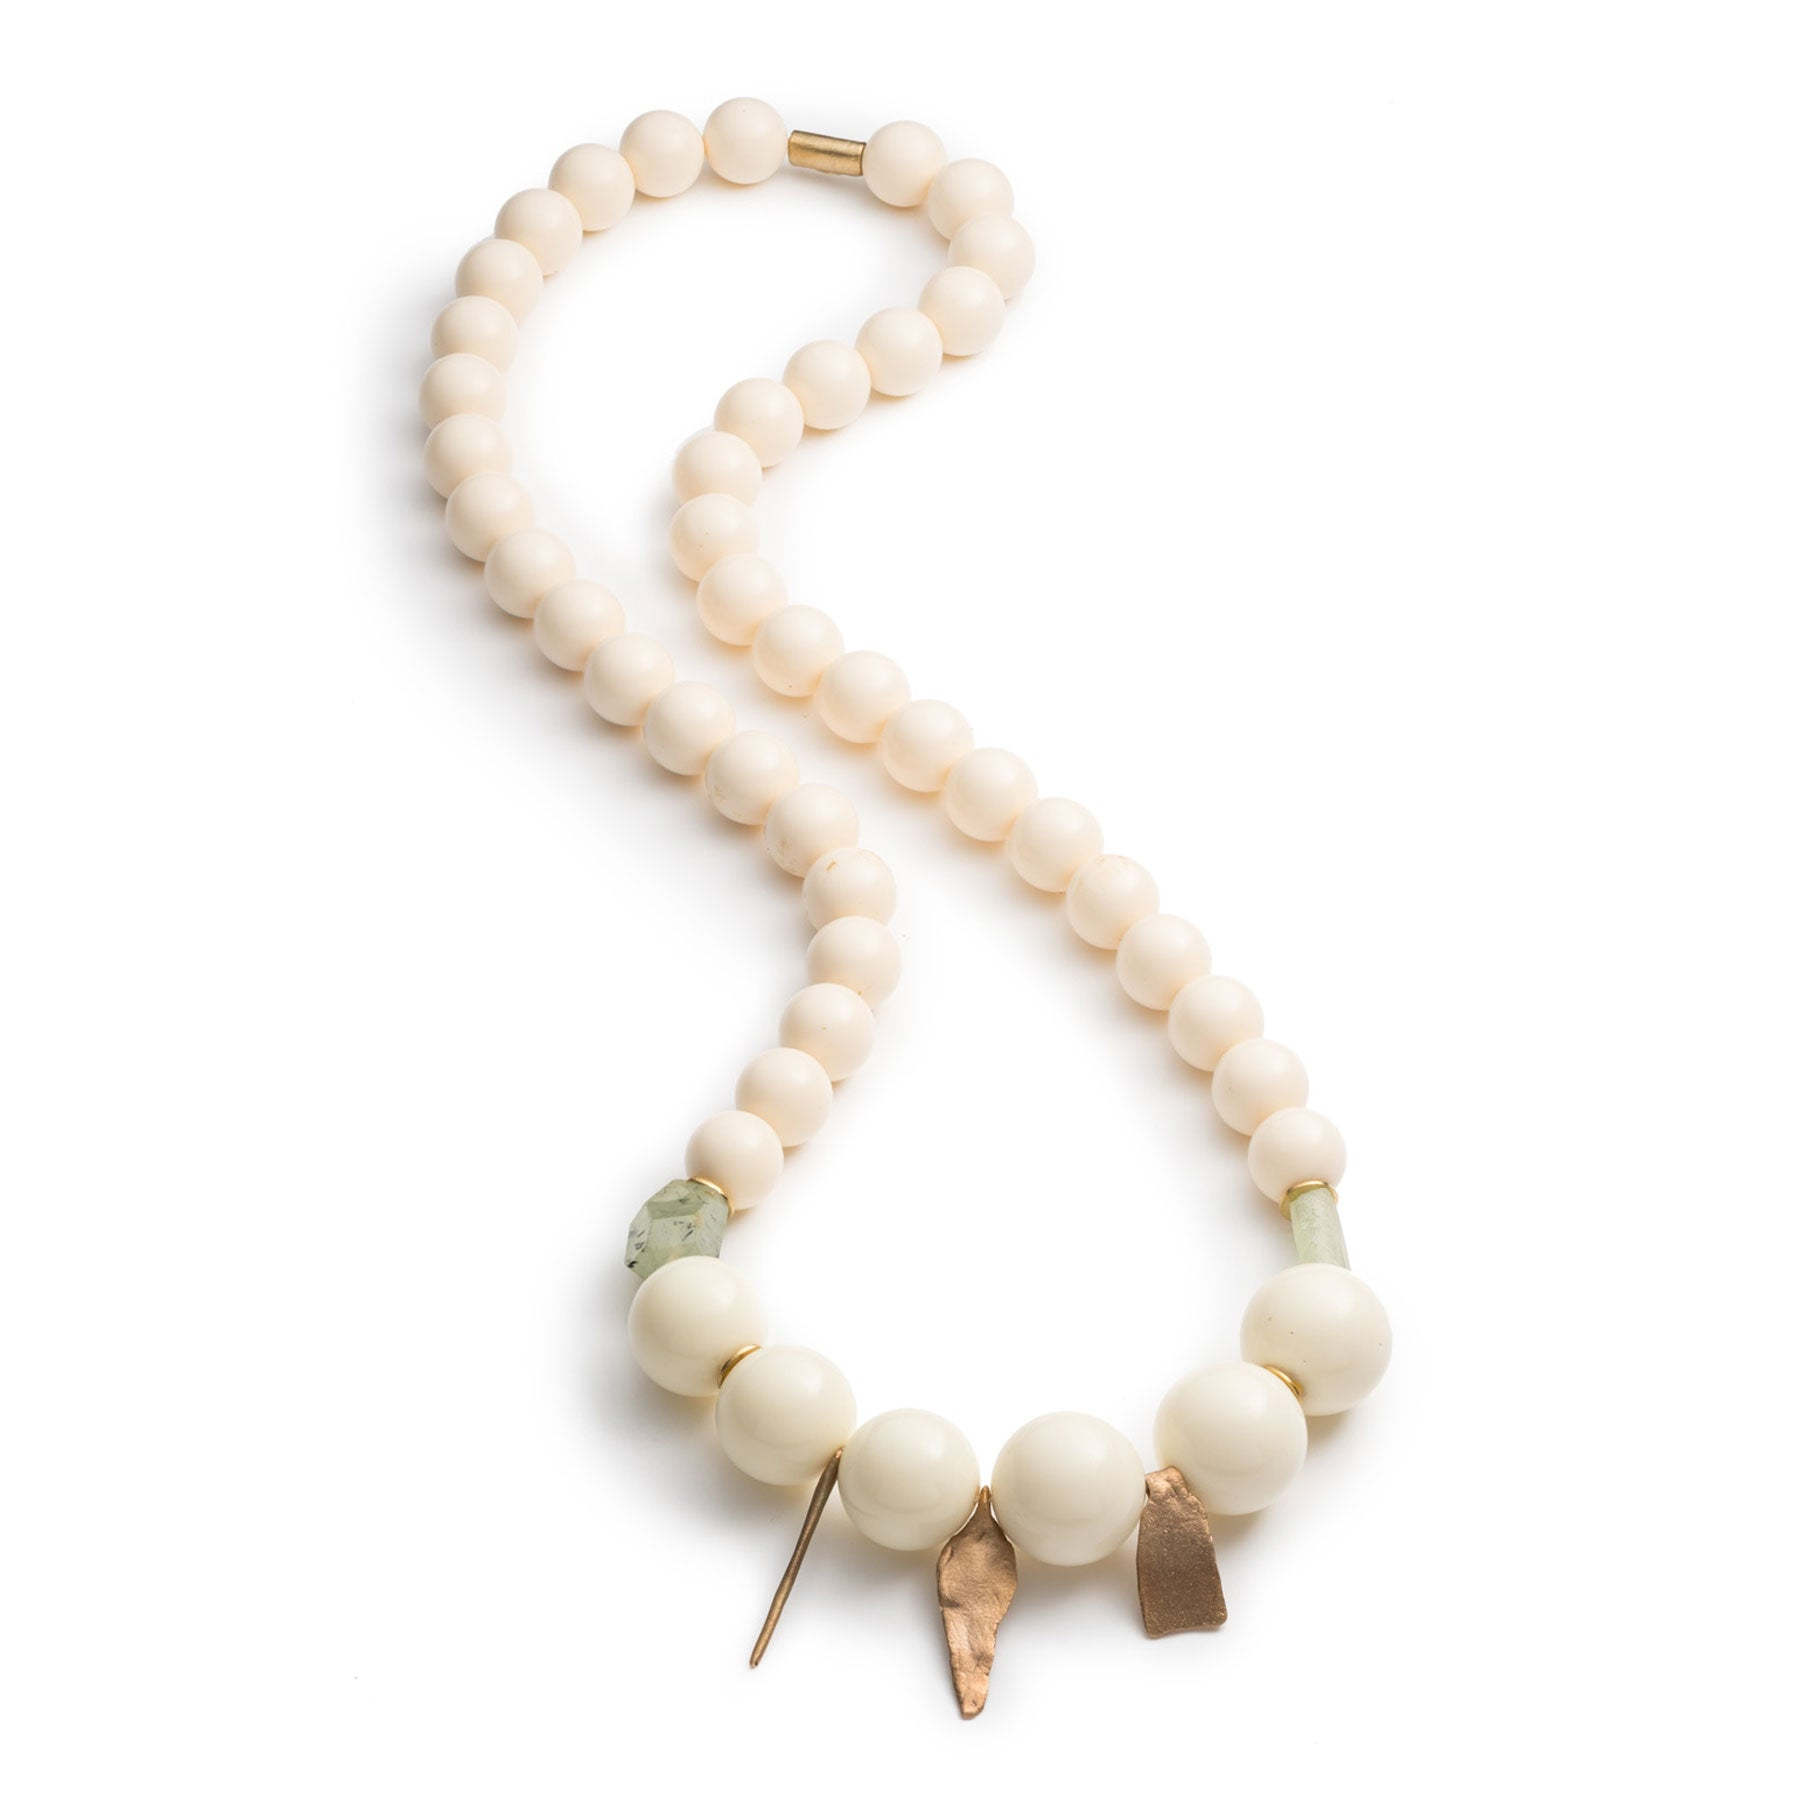 Lucite and Prehnite Necklace